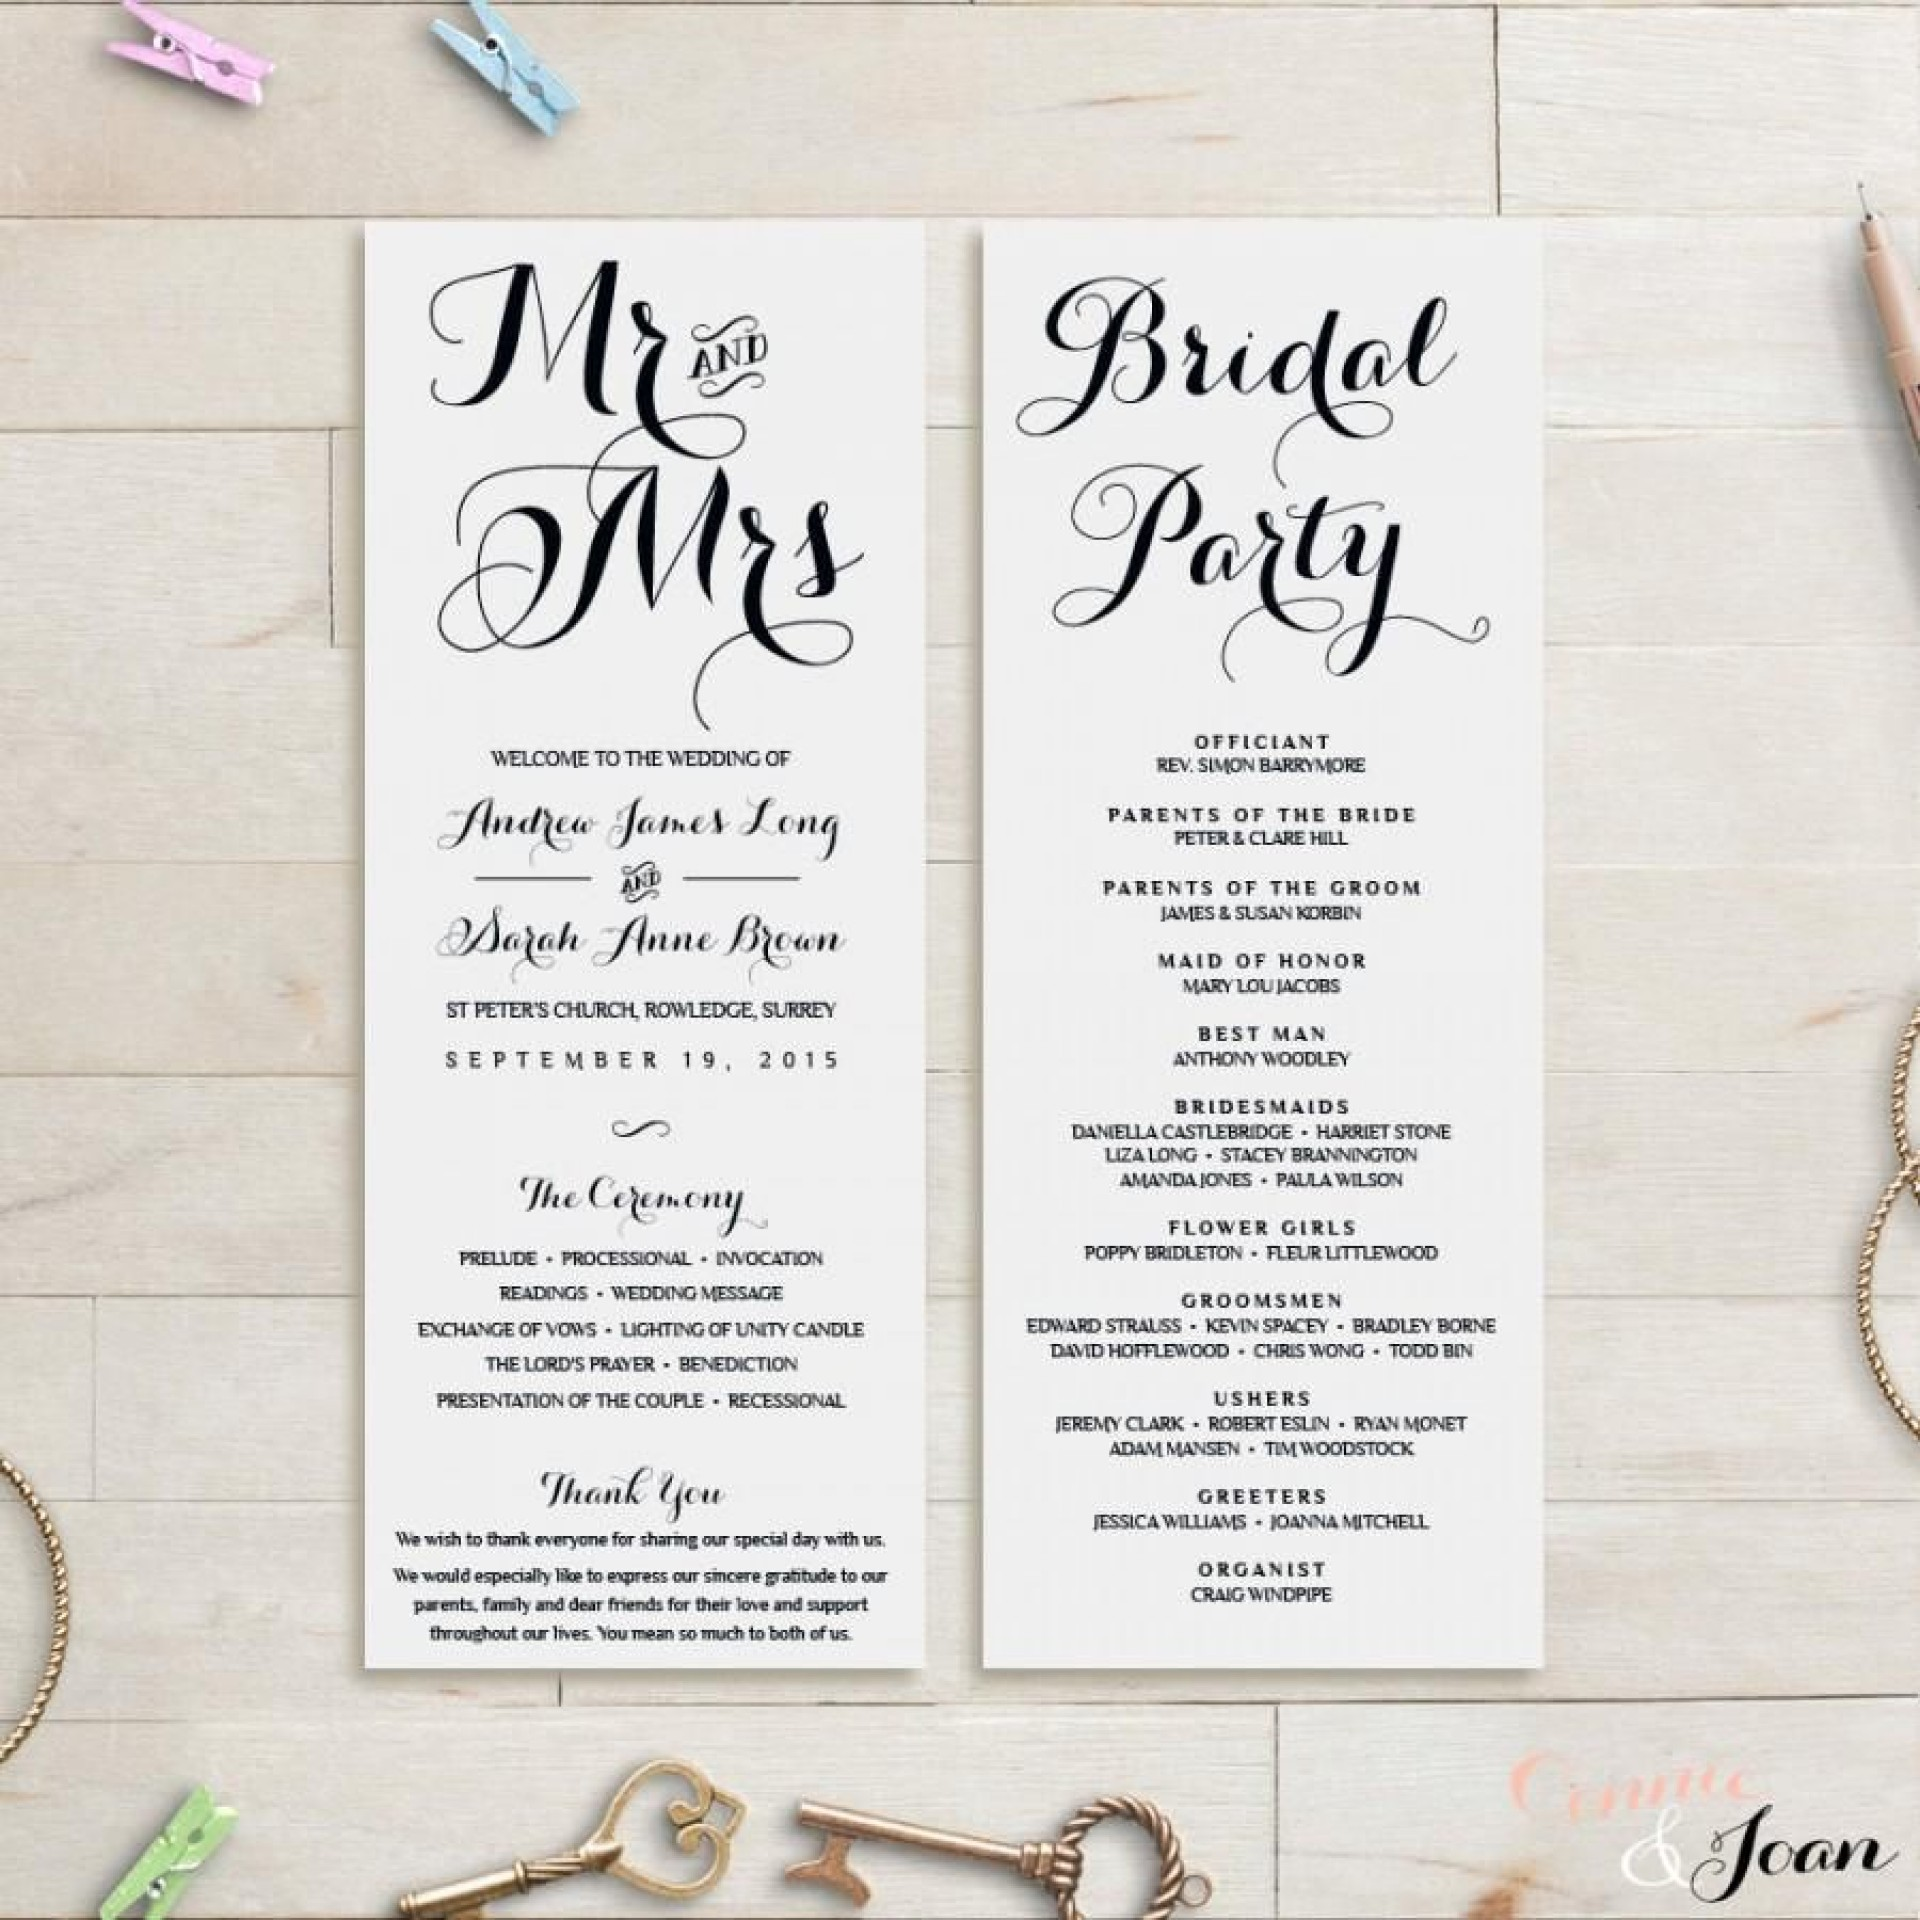 007 Unbelievable Wedding Order Of Service Template Concept  Church Free Microsoft Word Download1920